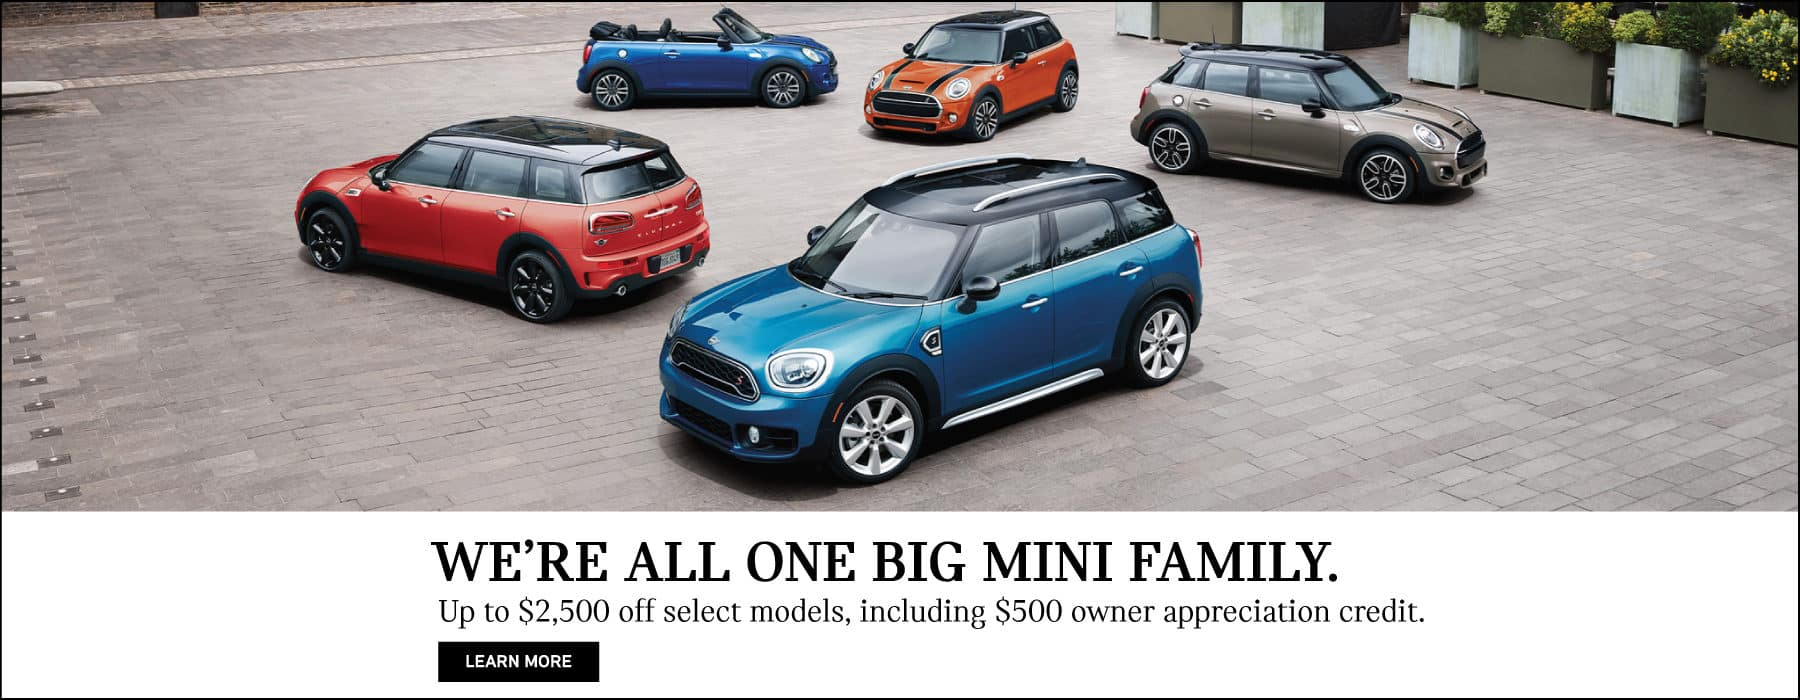 WE'RE ALL ONE BIT MINI FAMILY. Up to $2,500 off select models, including $500 owner appreciation credit.